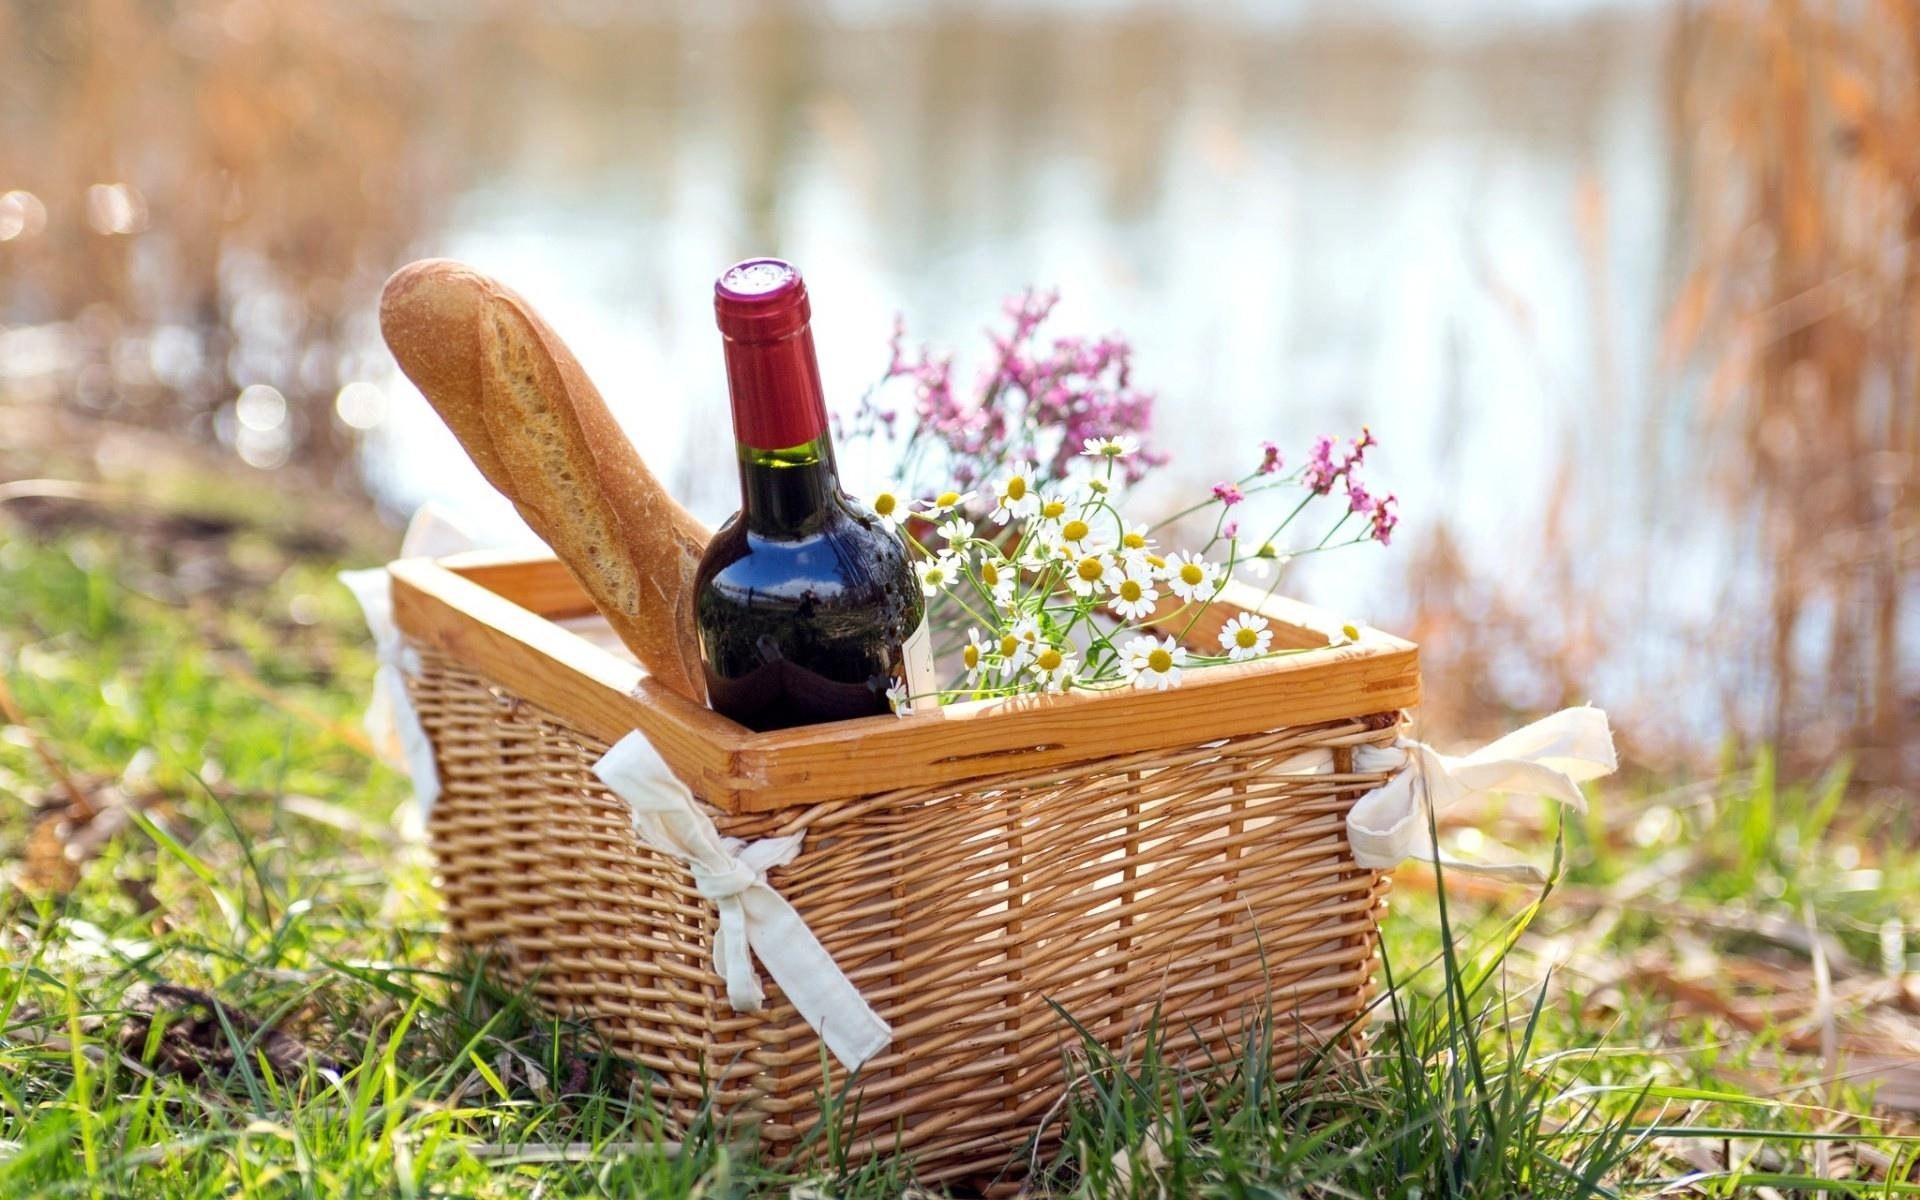 Picnic wallpapers HD quality